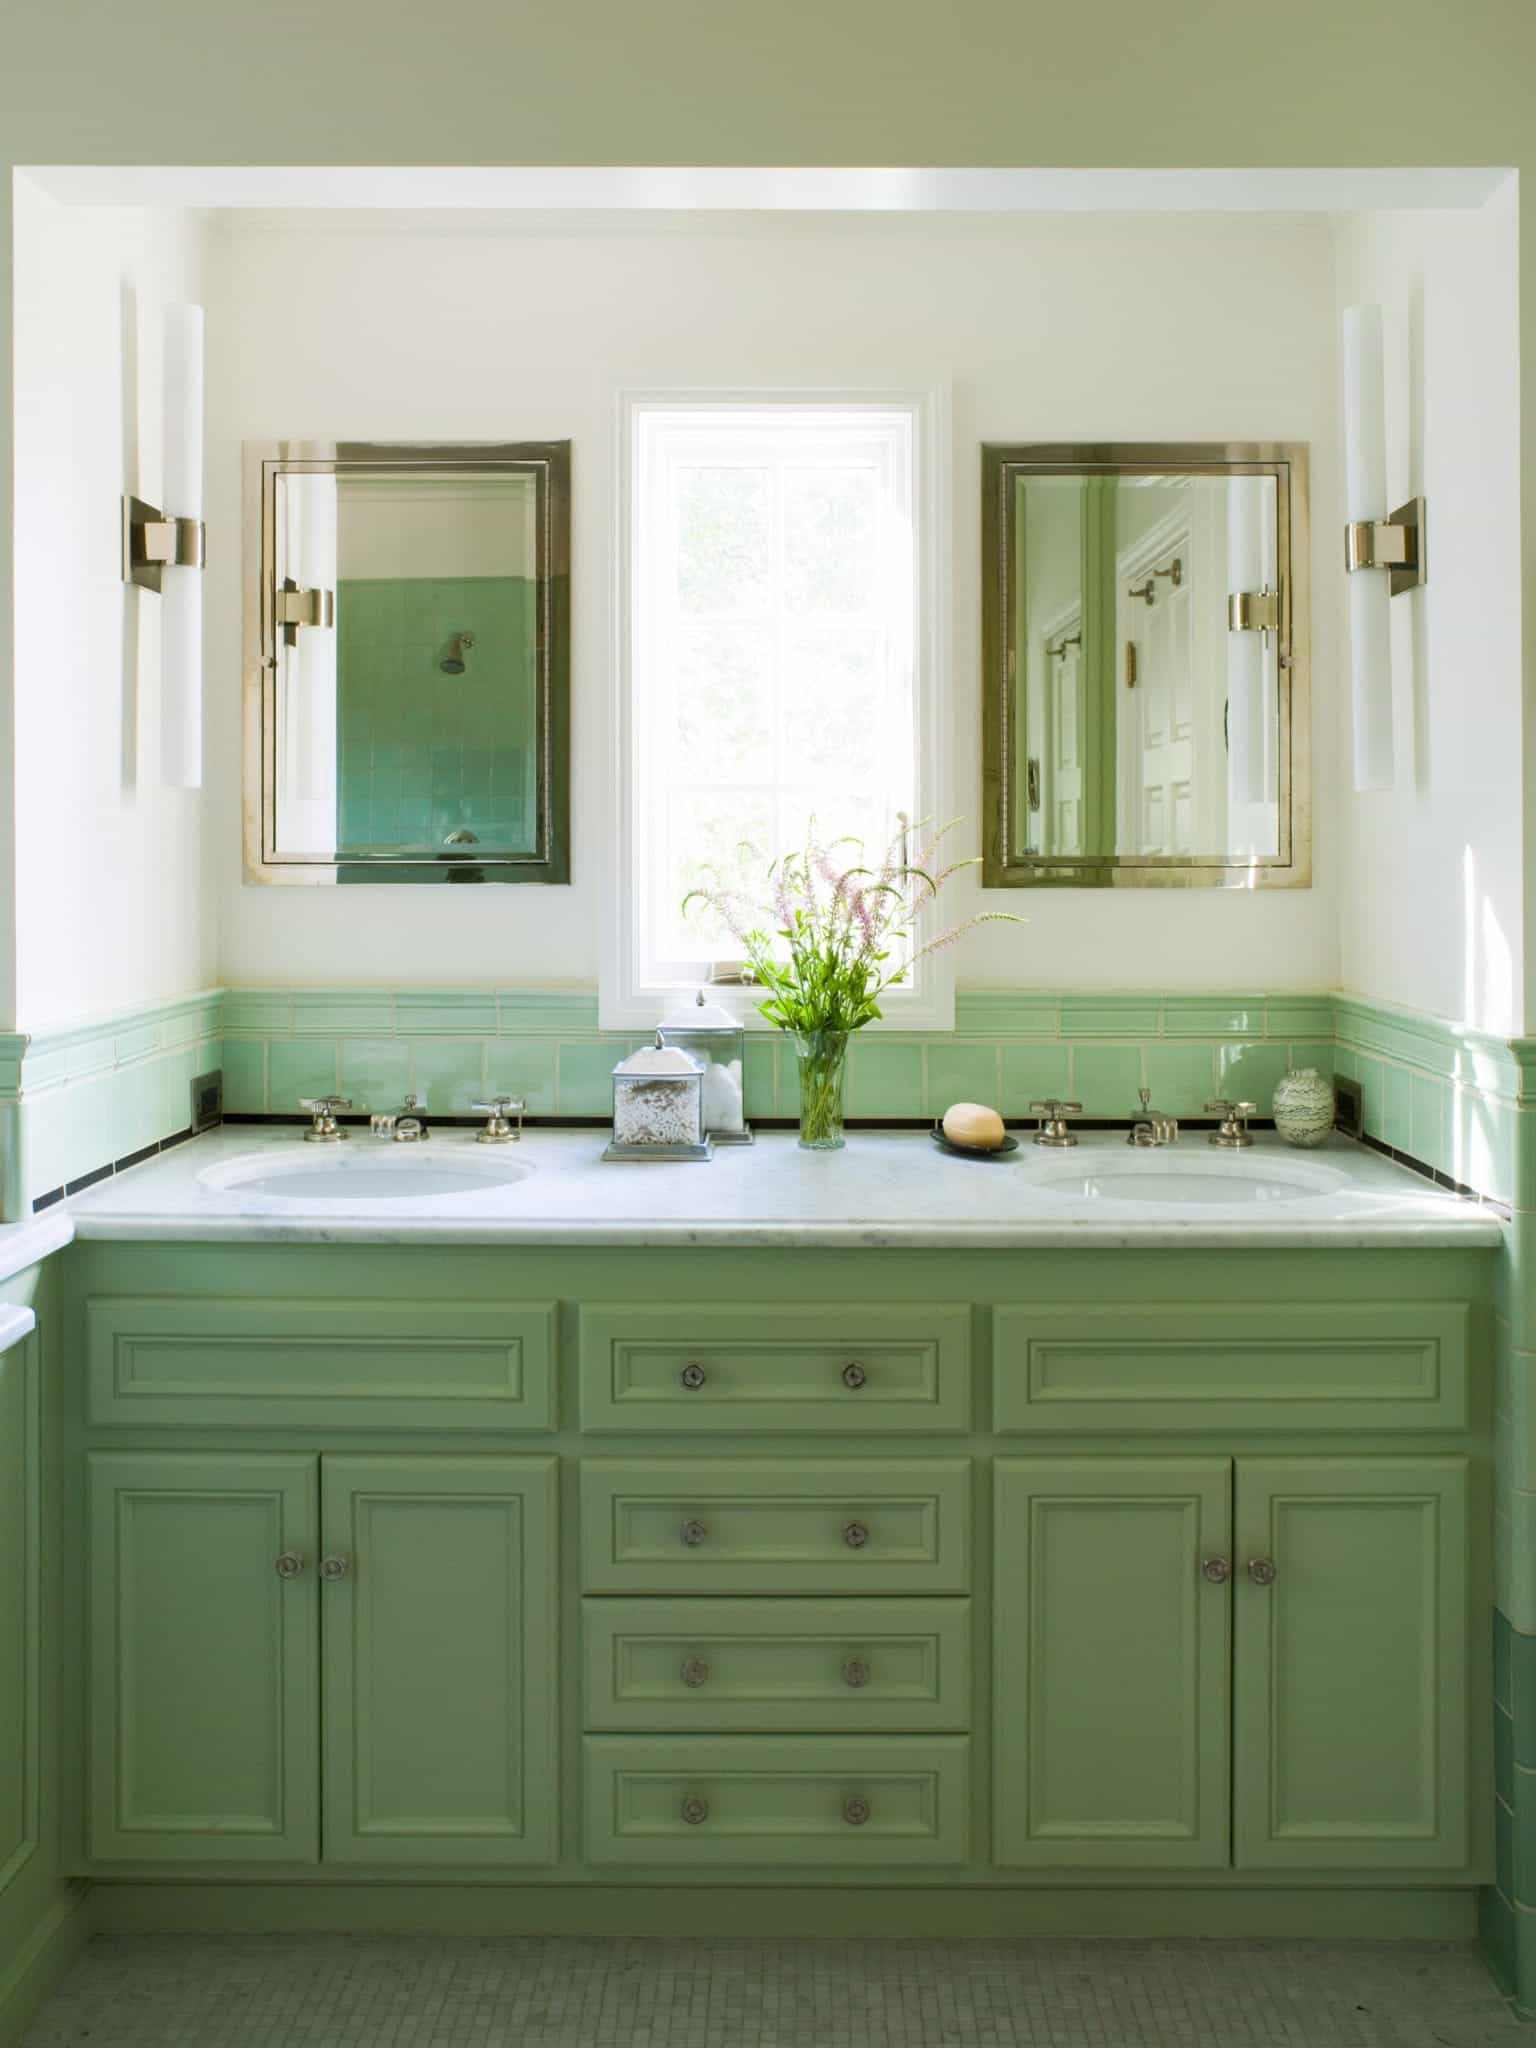 Vintage Vanities For Modern Bathroom Decor 23666